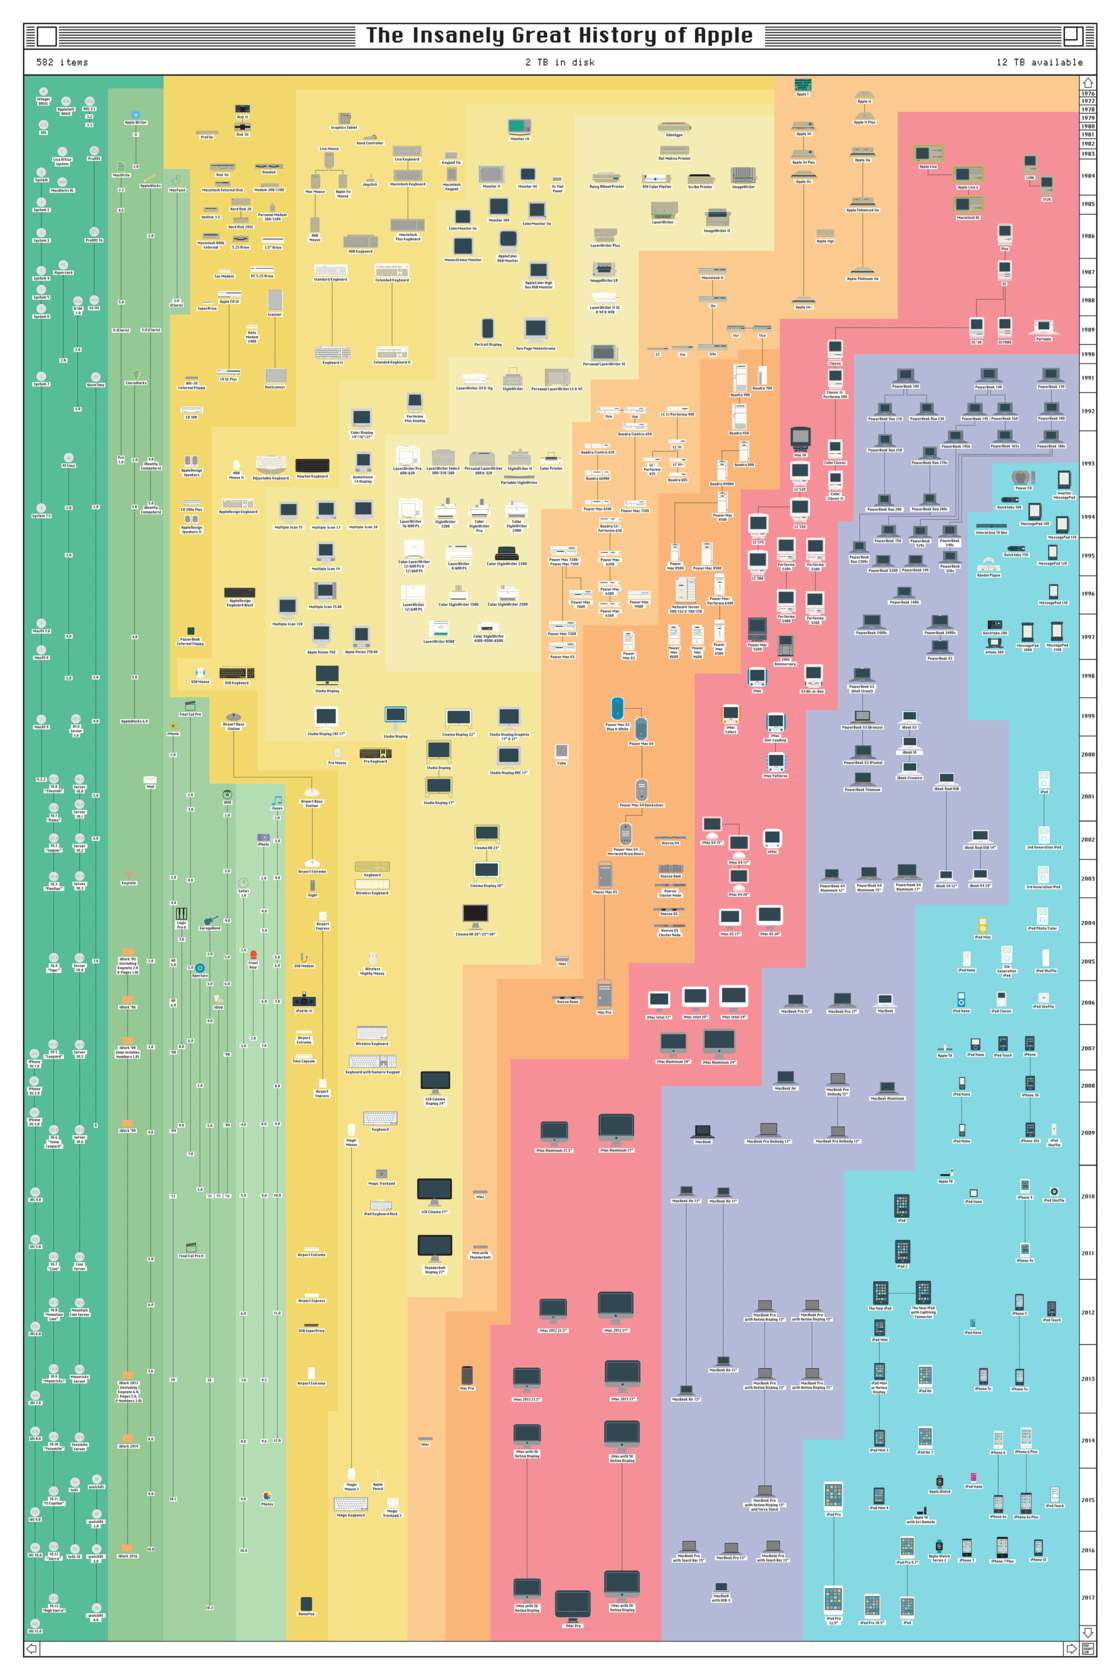 History of Apple - All the Apple products from 1976 to 2017 in a single poster